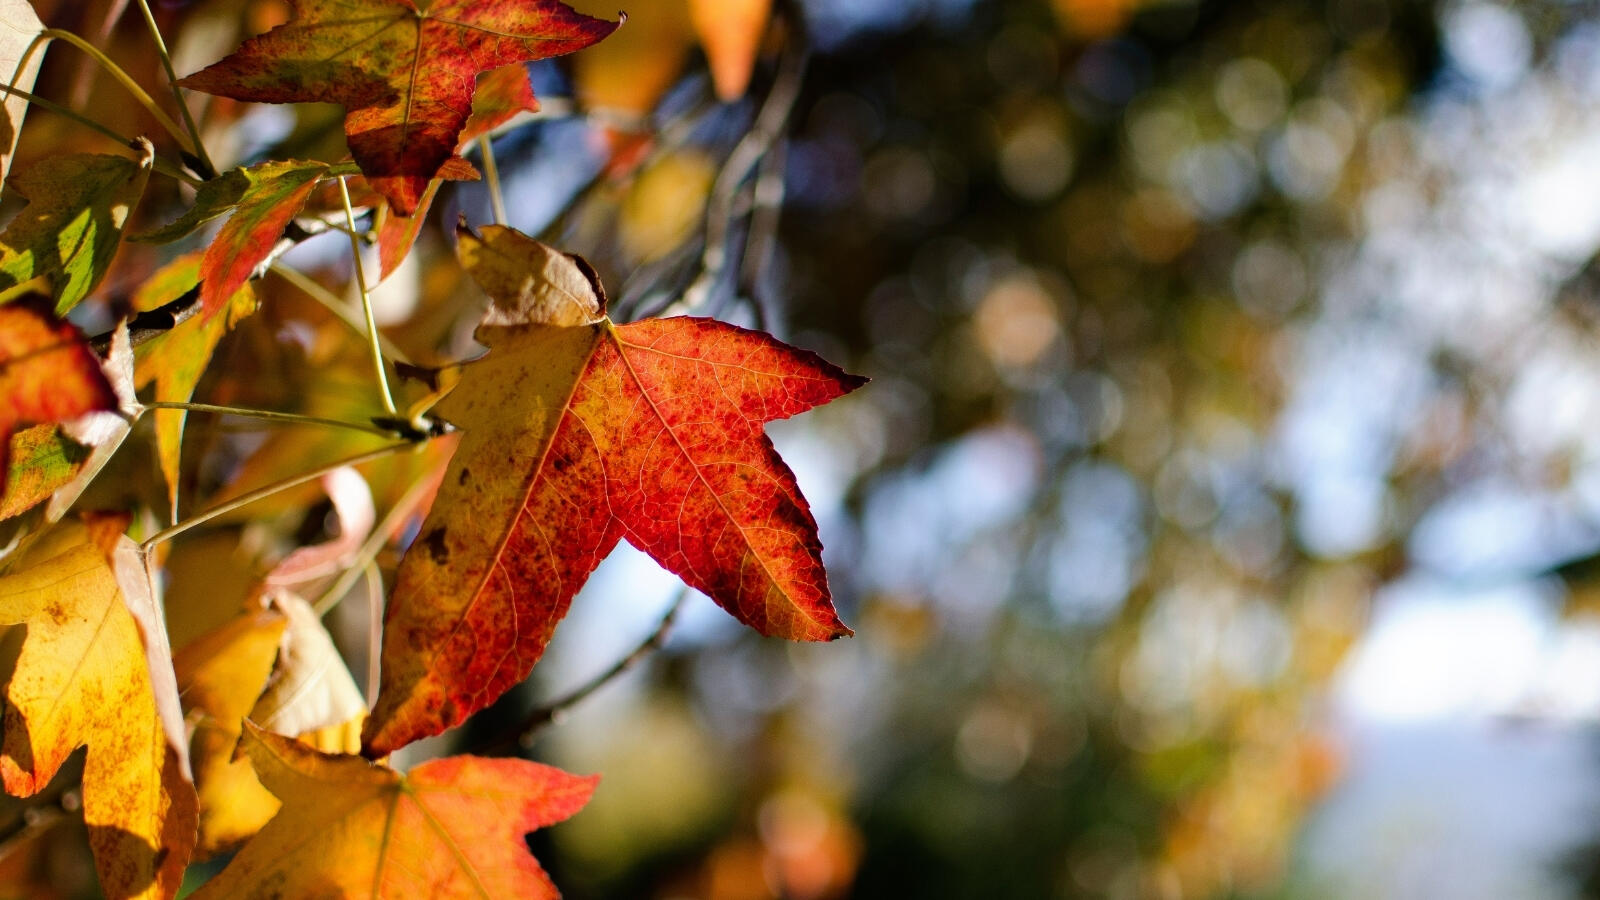 Tips for an amazing autumn photo walk